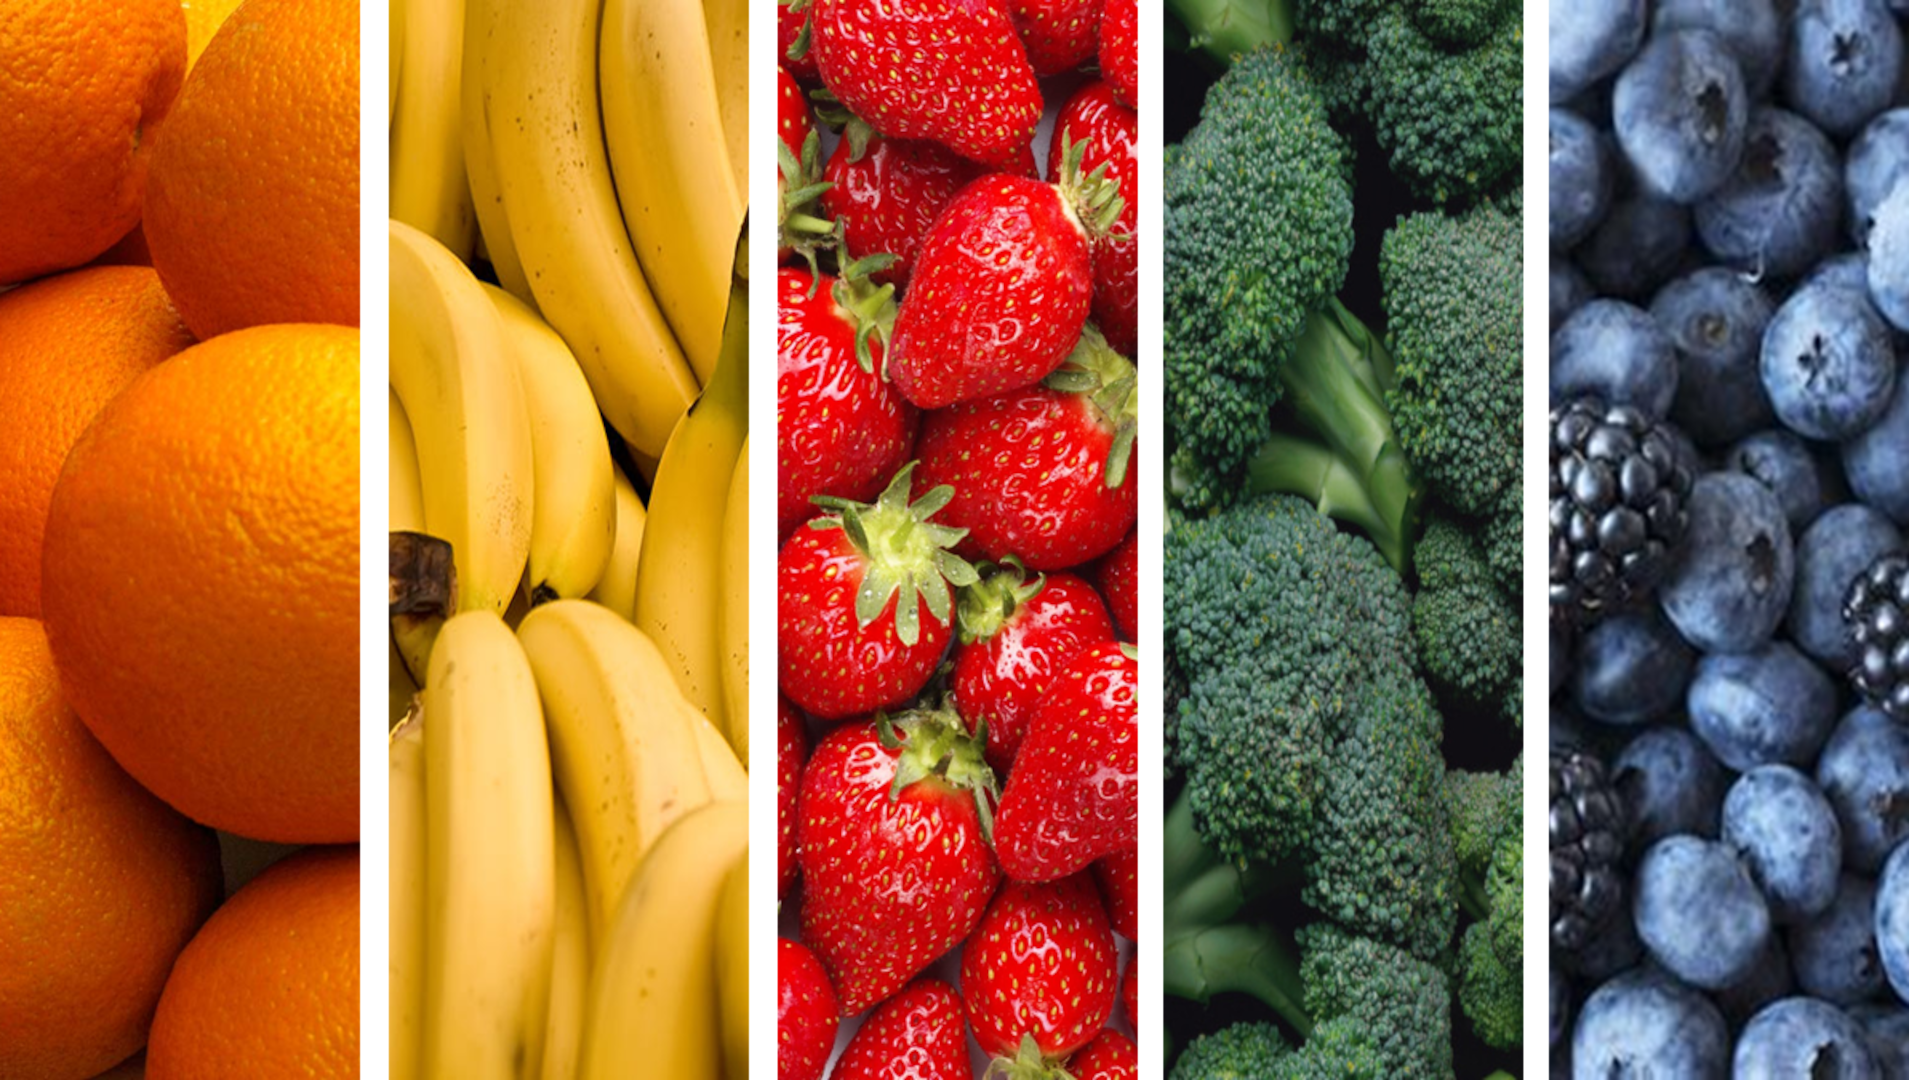 Healthy eating includes a variety of colorful fruits and vegetables.